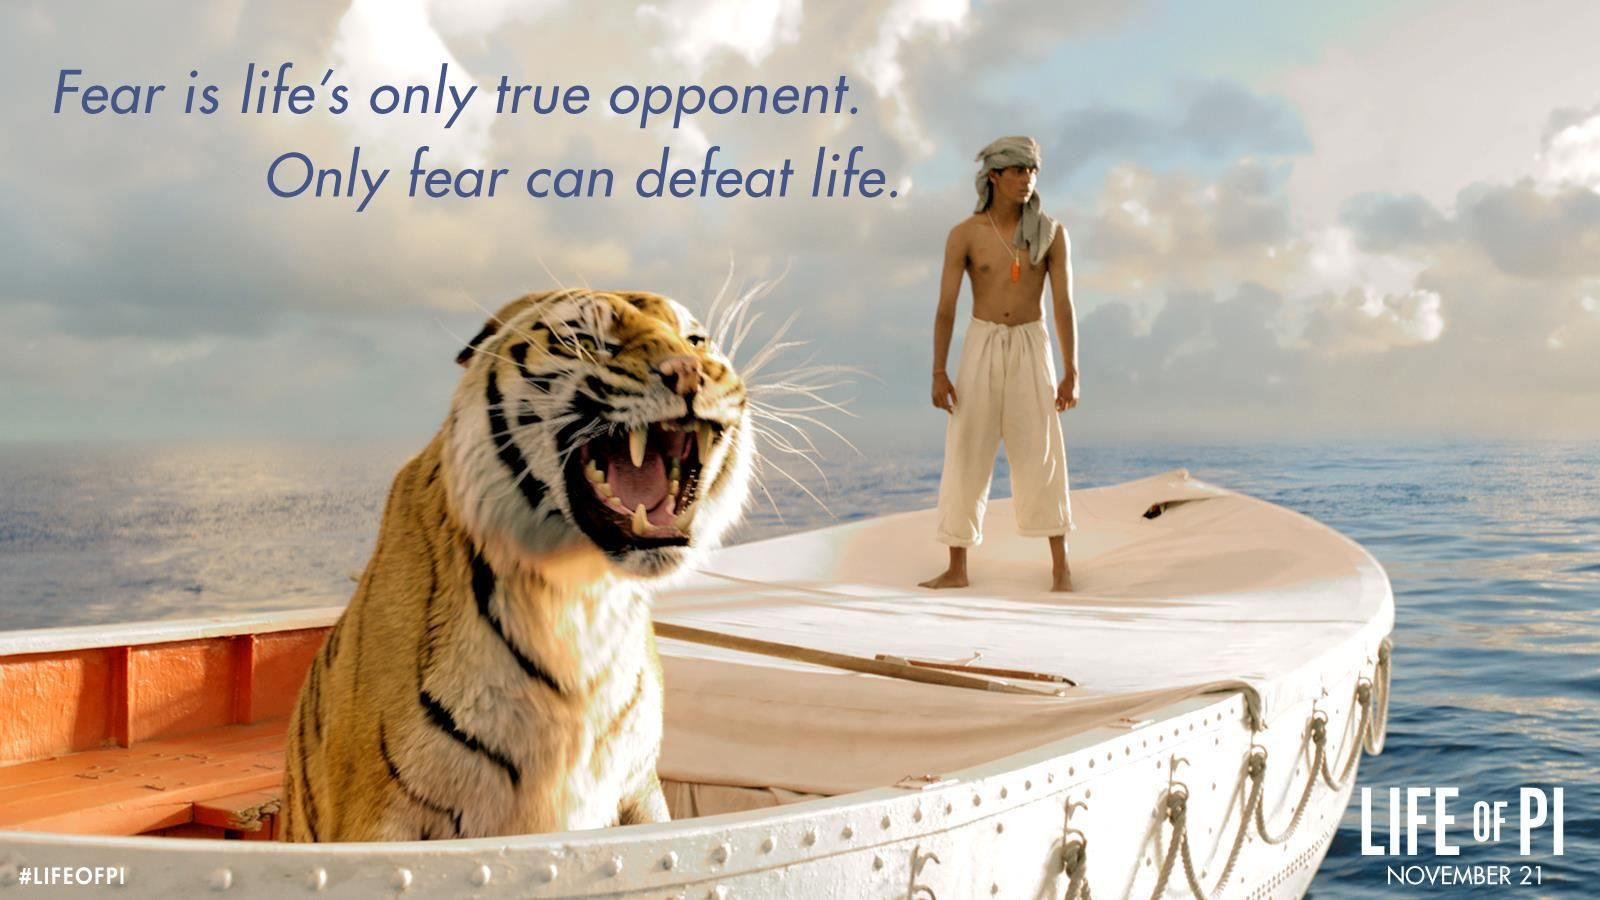 Famous Life Of Pi Quotes. QuotesGram